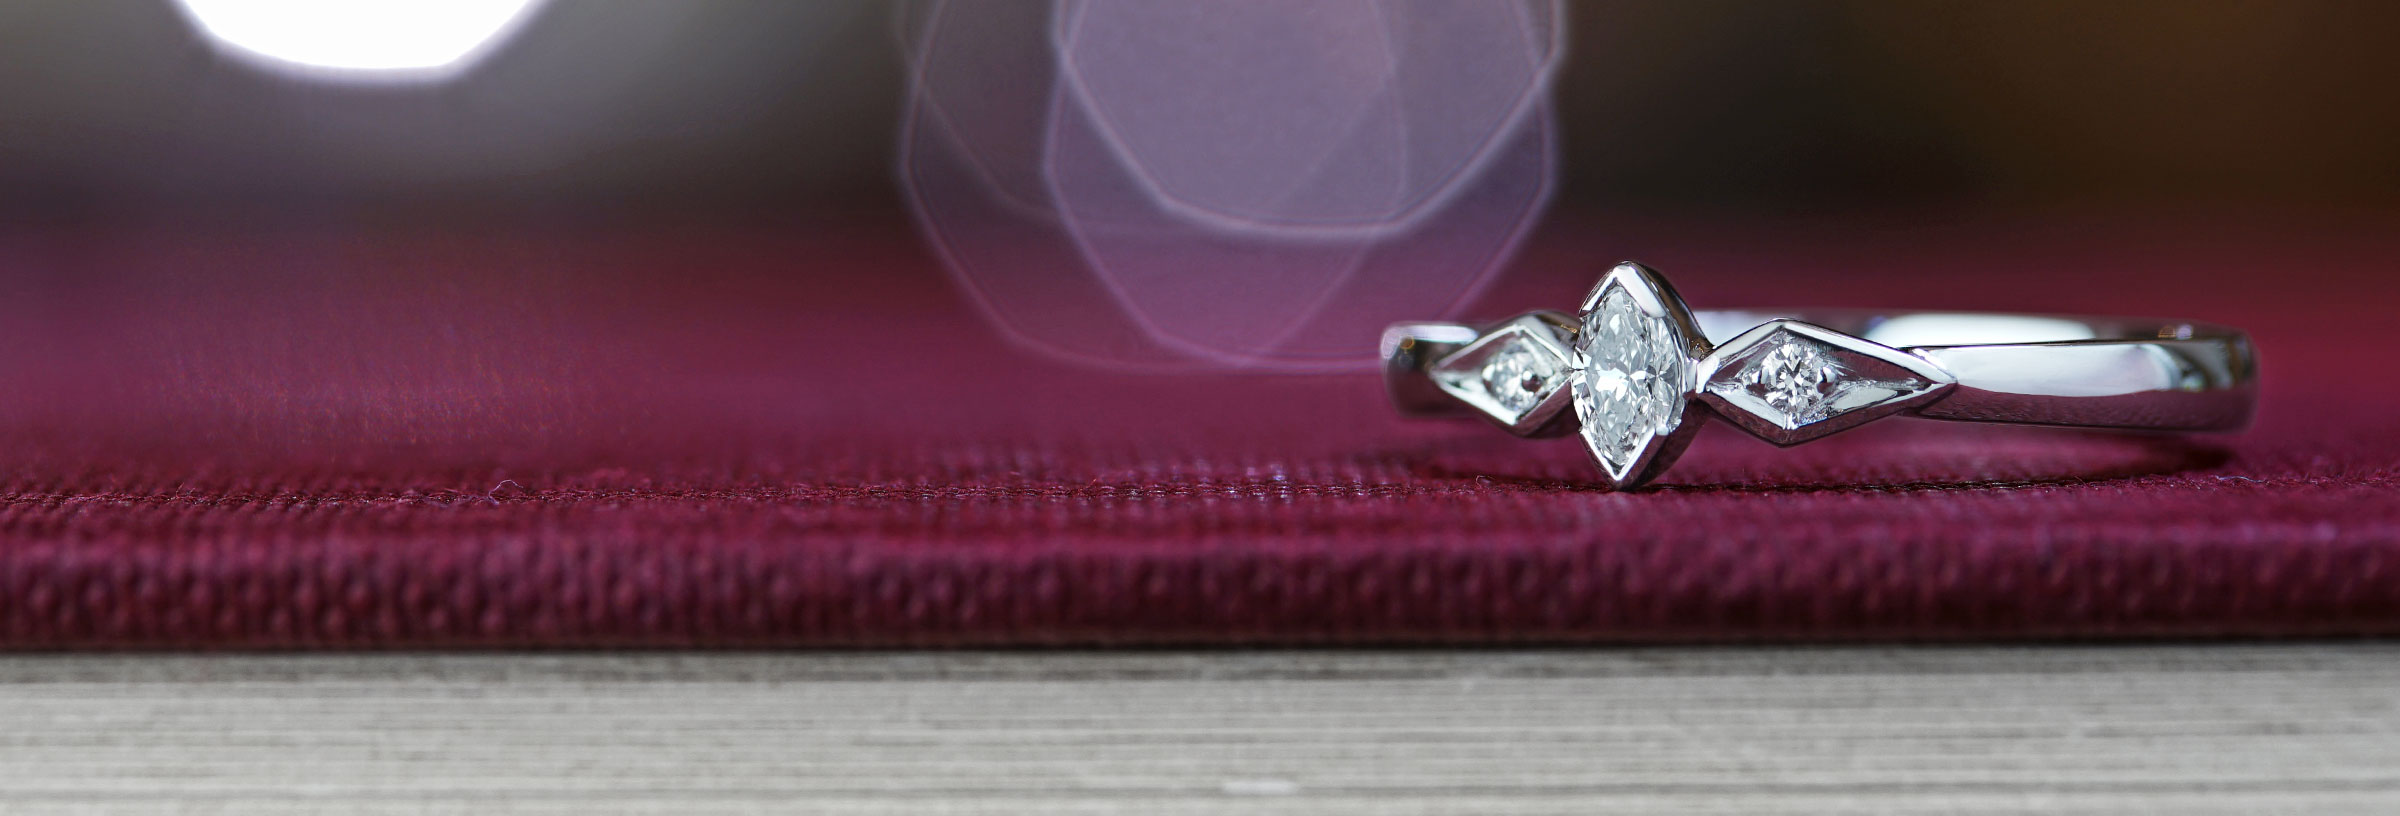 Vintage inspired engagement ring with 0.11ct marquise cut diamond